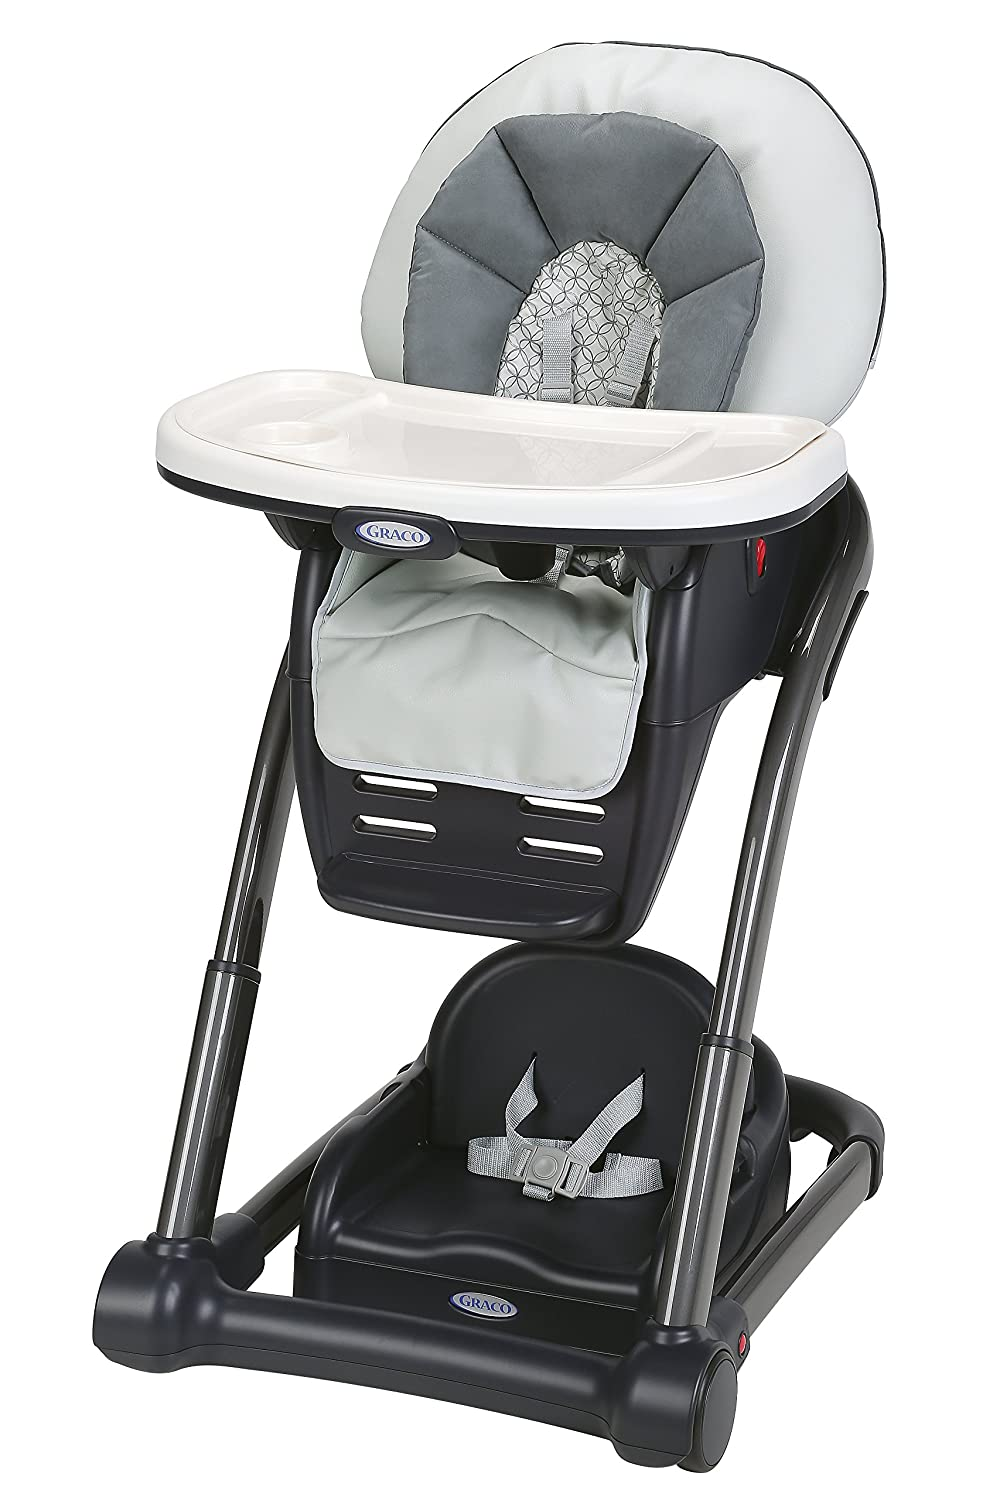 Brilliant Graco Blossom 6 In 1 Convertible High Chair Seating System Mckinley Alphanode Cool Chair Designs And Ideas Alphanodeonline